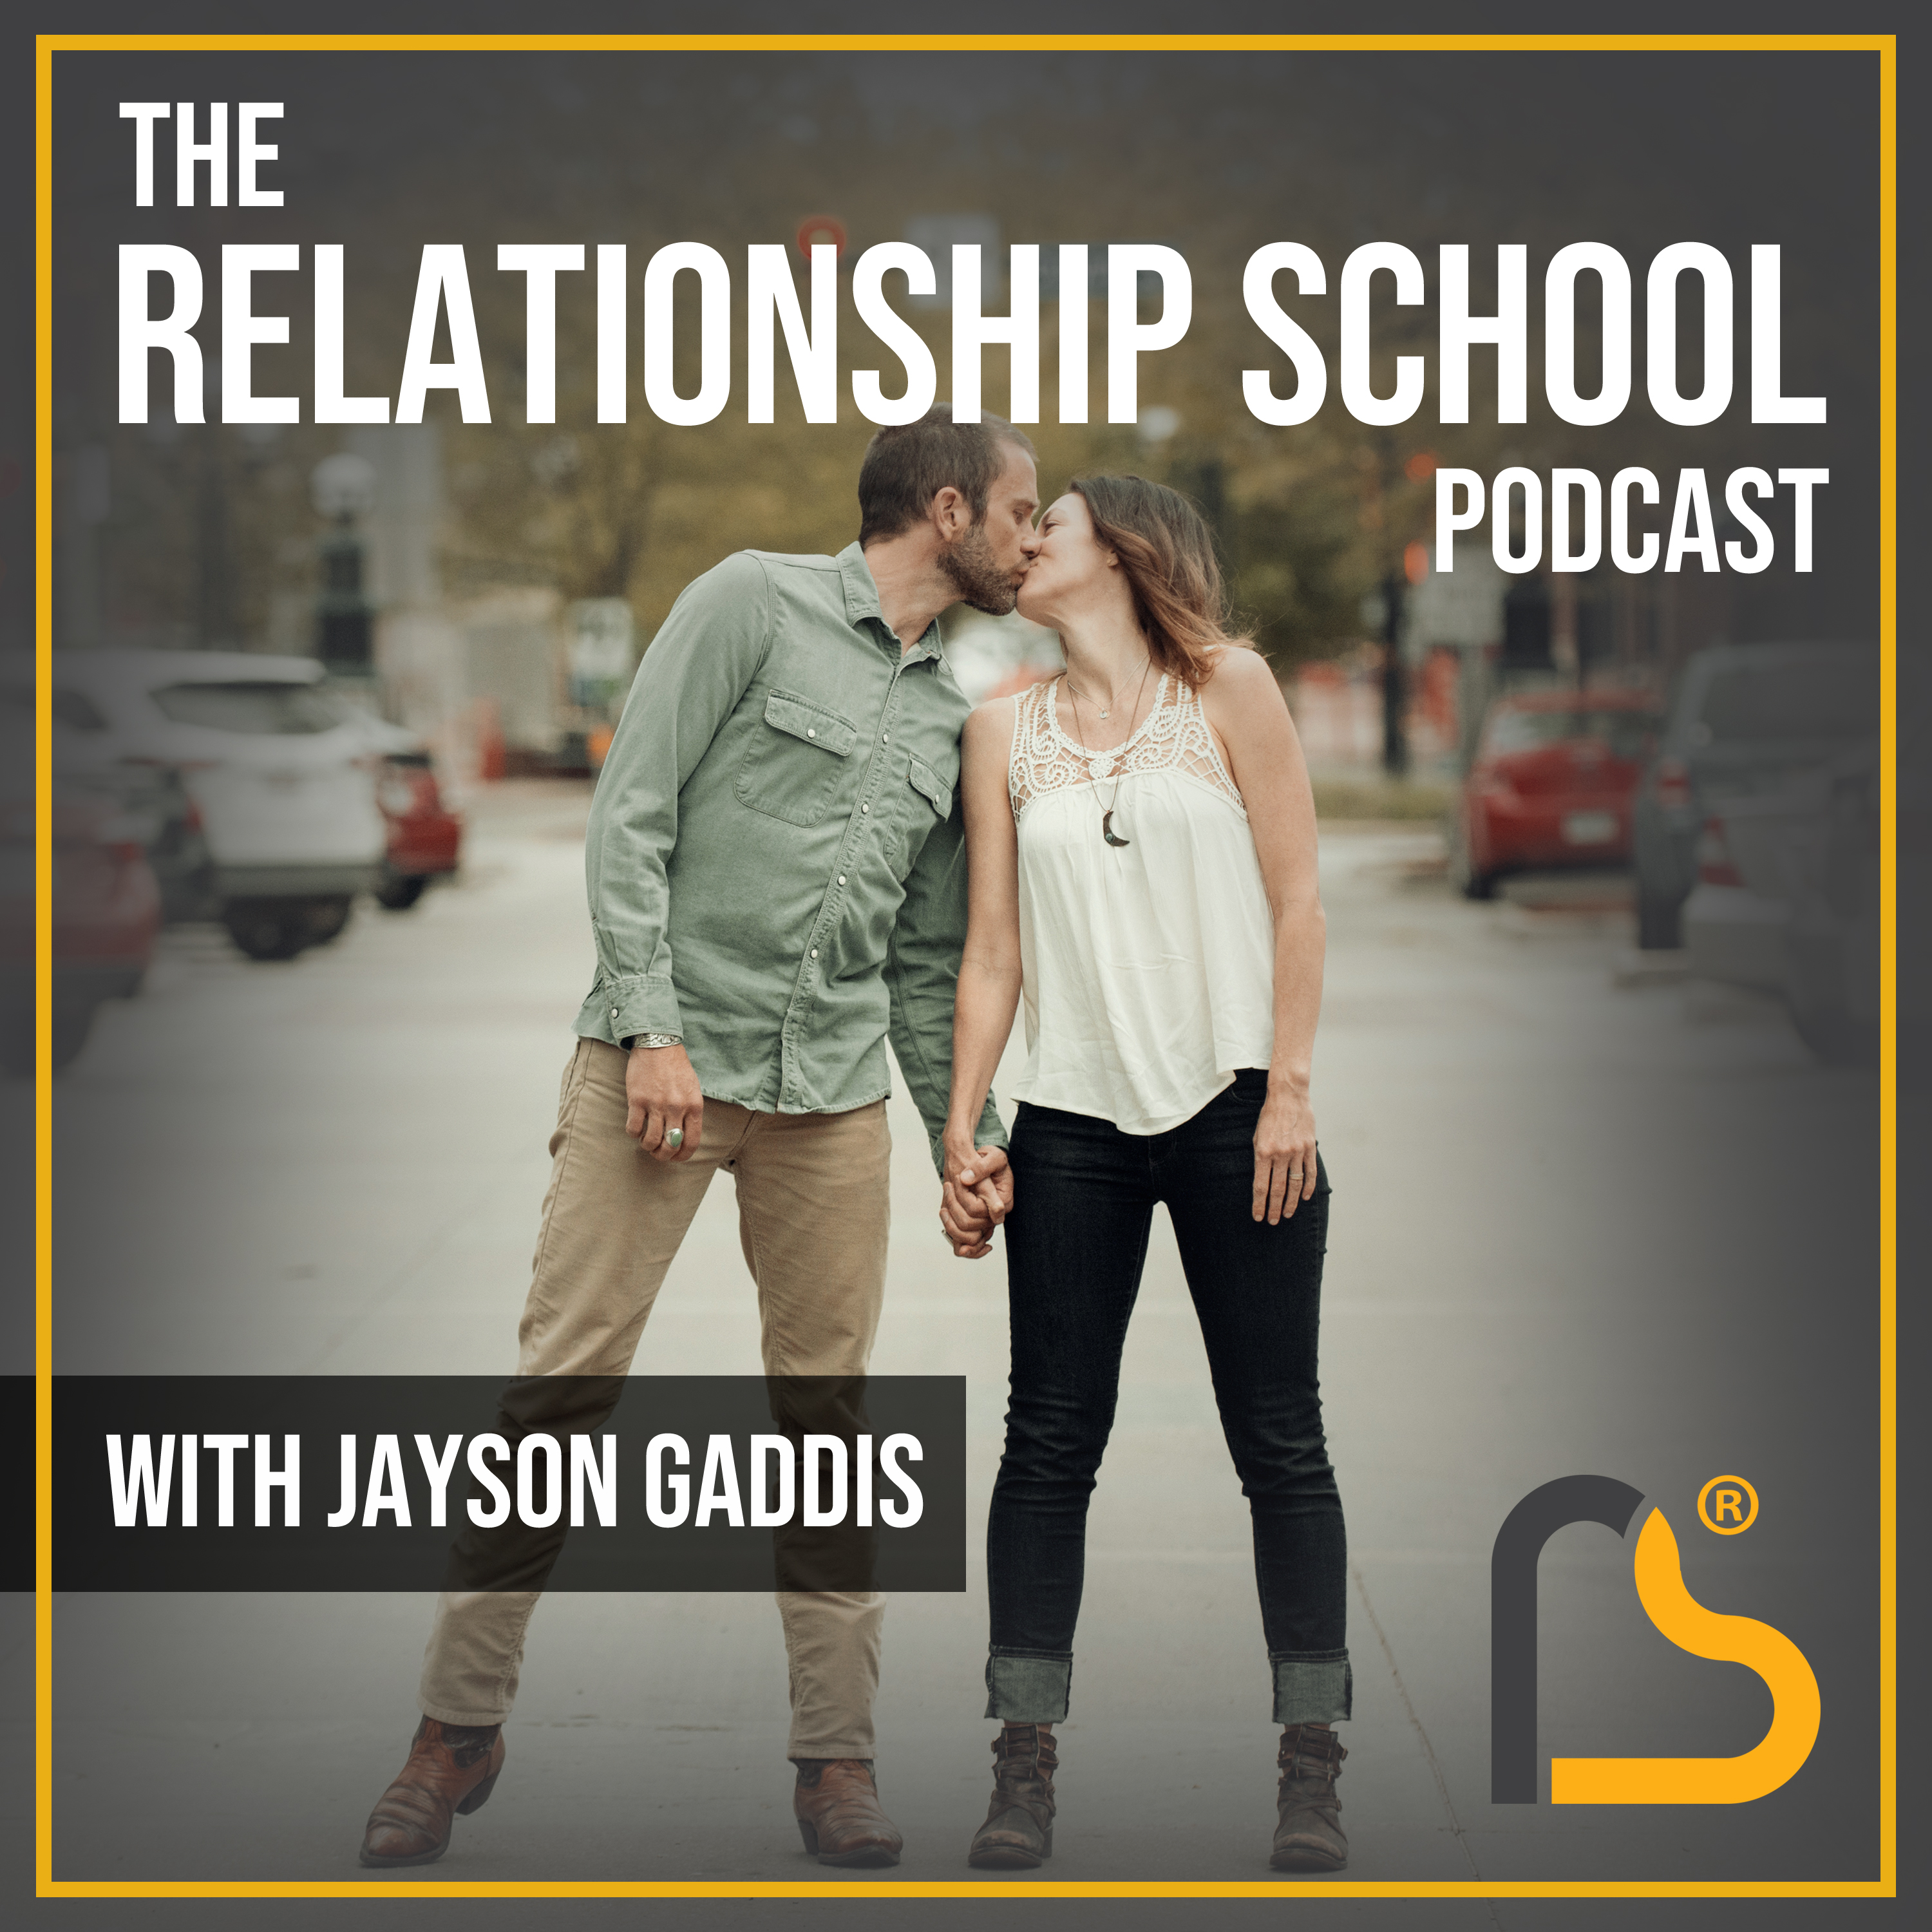 The Relationship School Podcast - How to Feel Seen By Others - Relationship School Podcast EPISODE 260